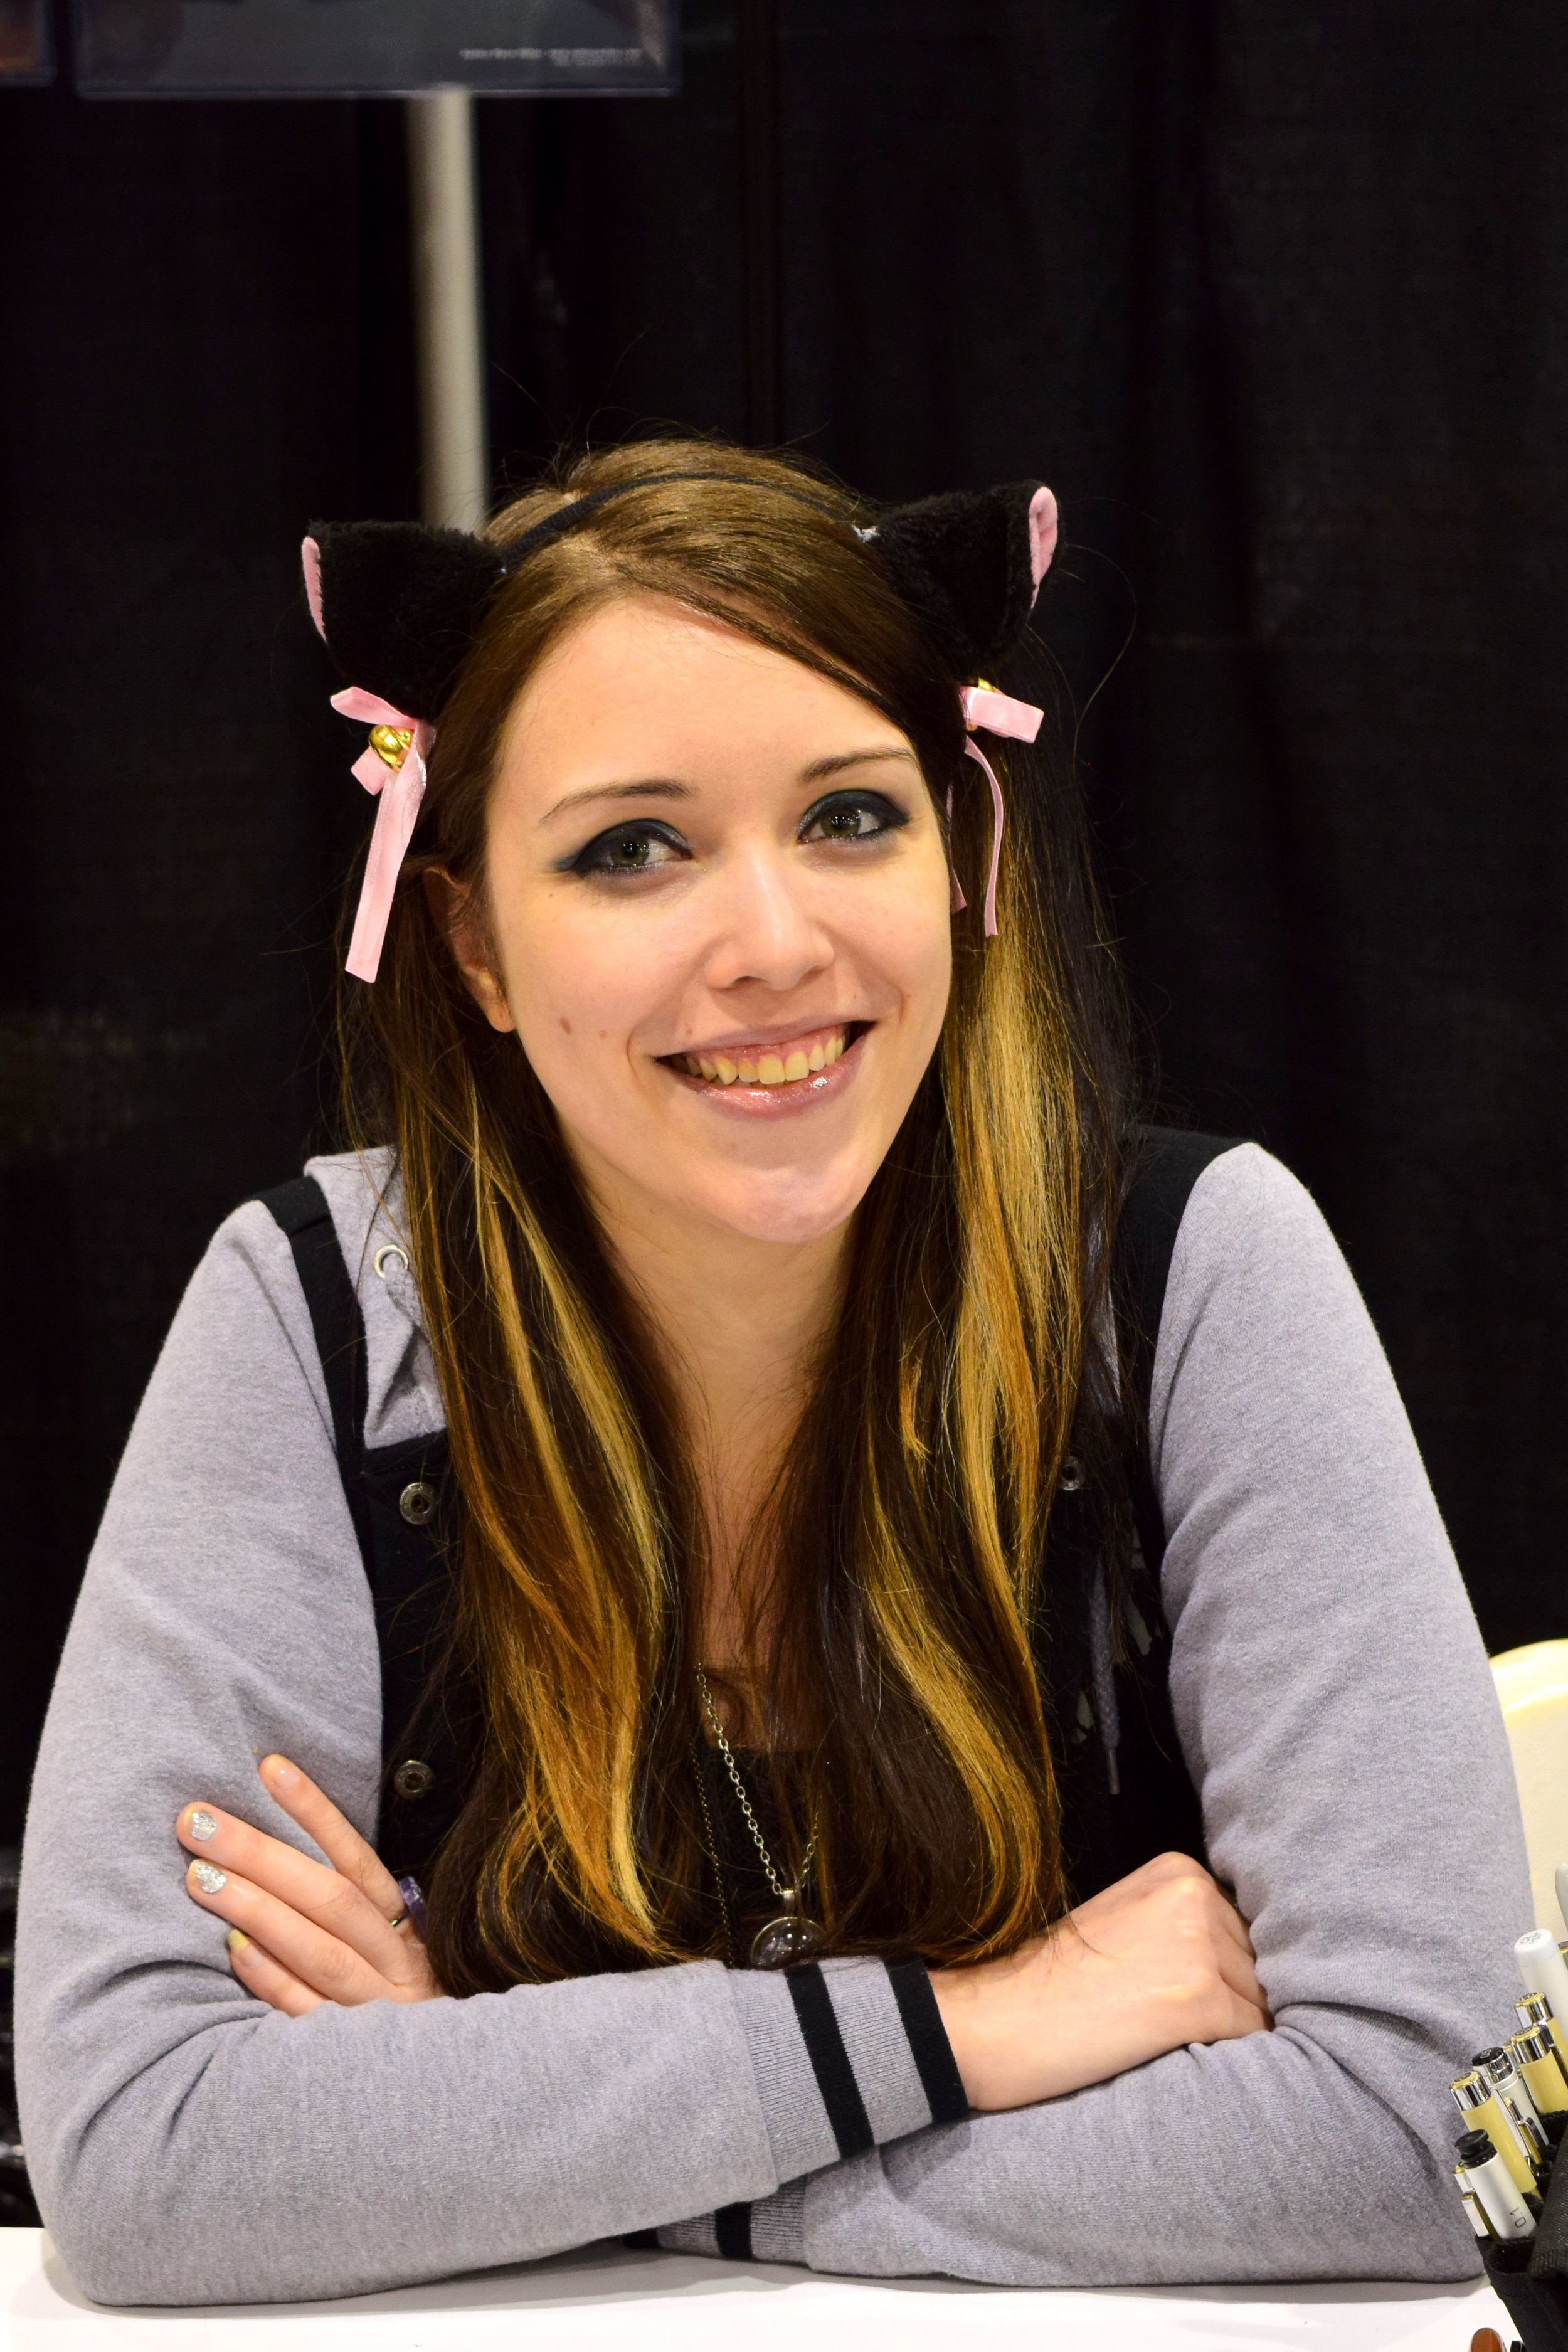 Ashley Witter at Phoenix Comic Con 2017.